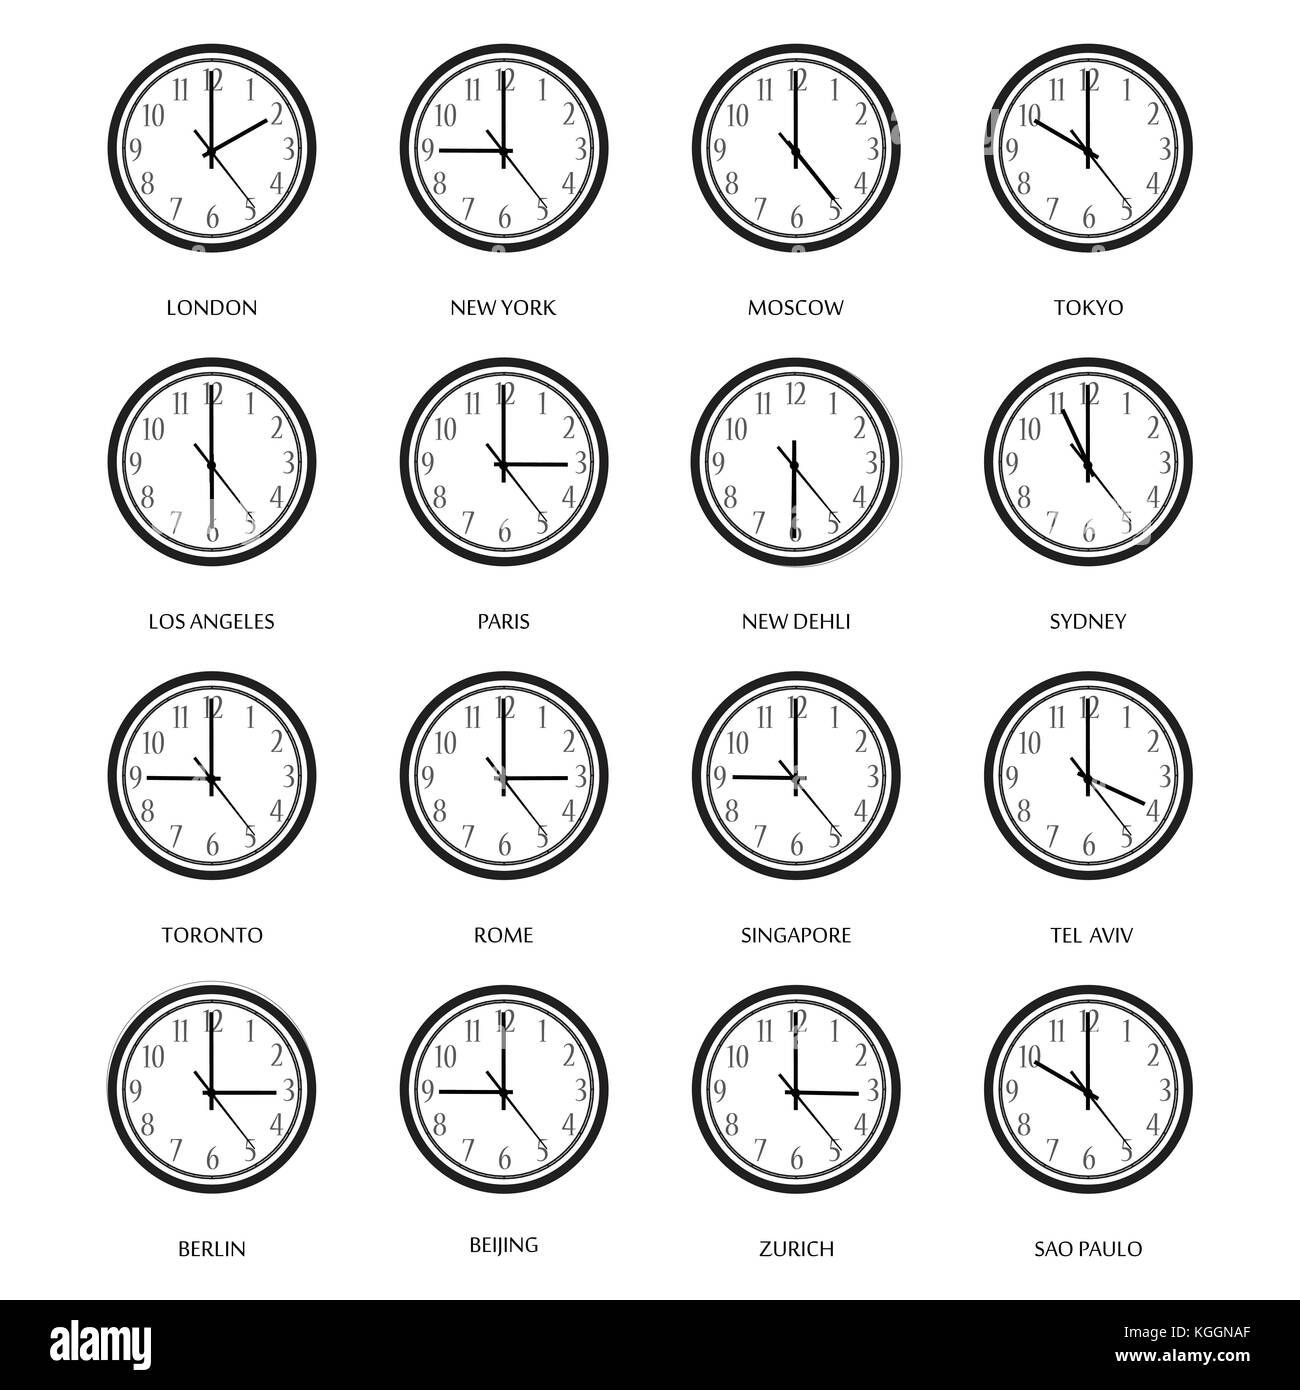 Vector illustration set, collection wall clock with time zones. London, Moscow, Berlin, New York, Tel Aviv - Stock Image